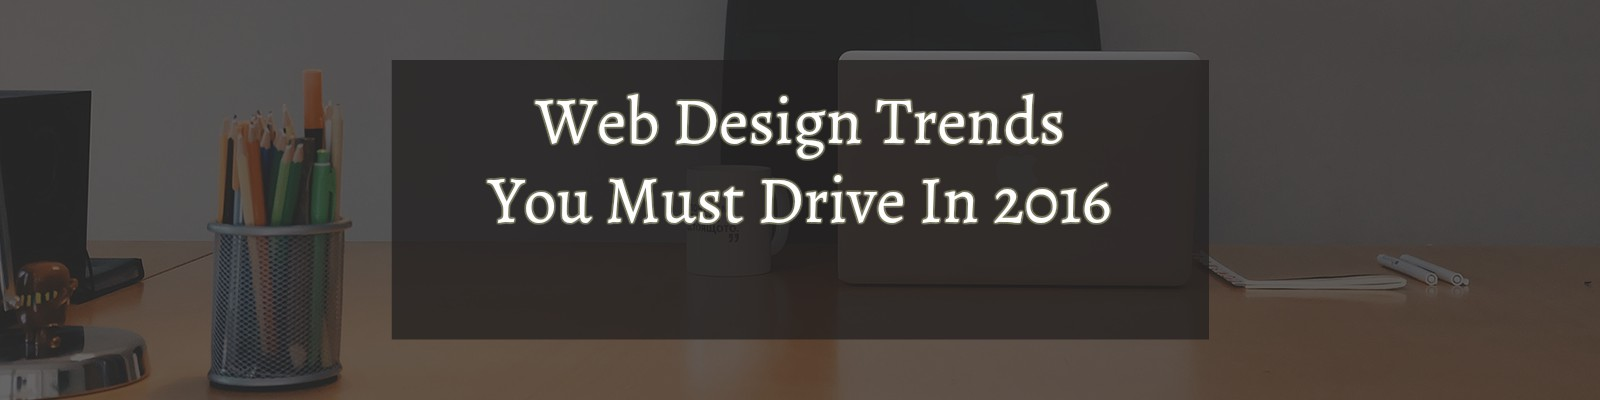 Web Design Trend in 2016